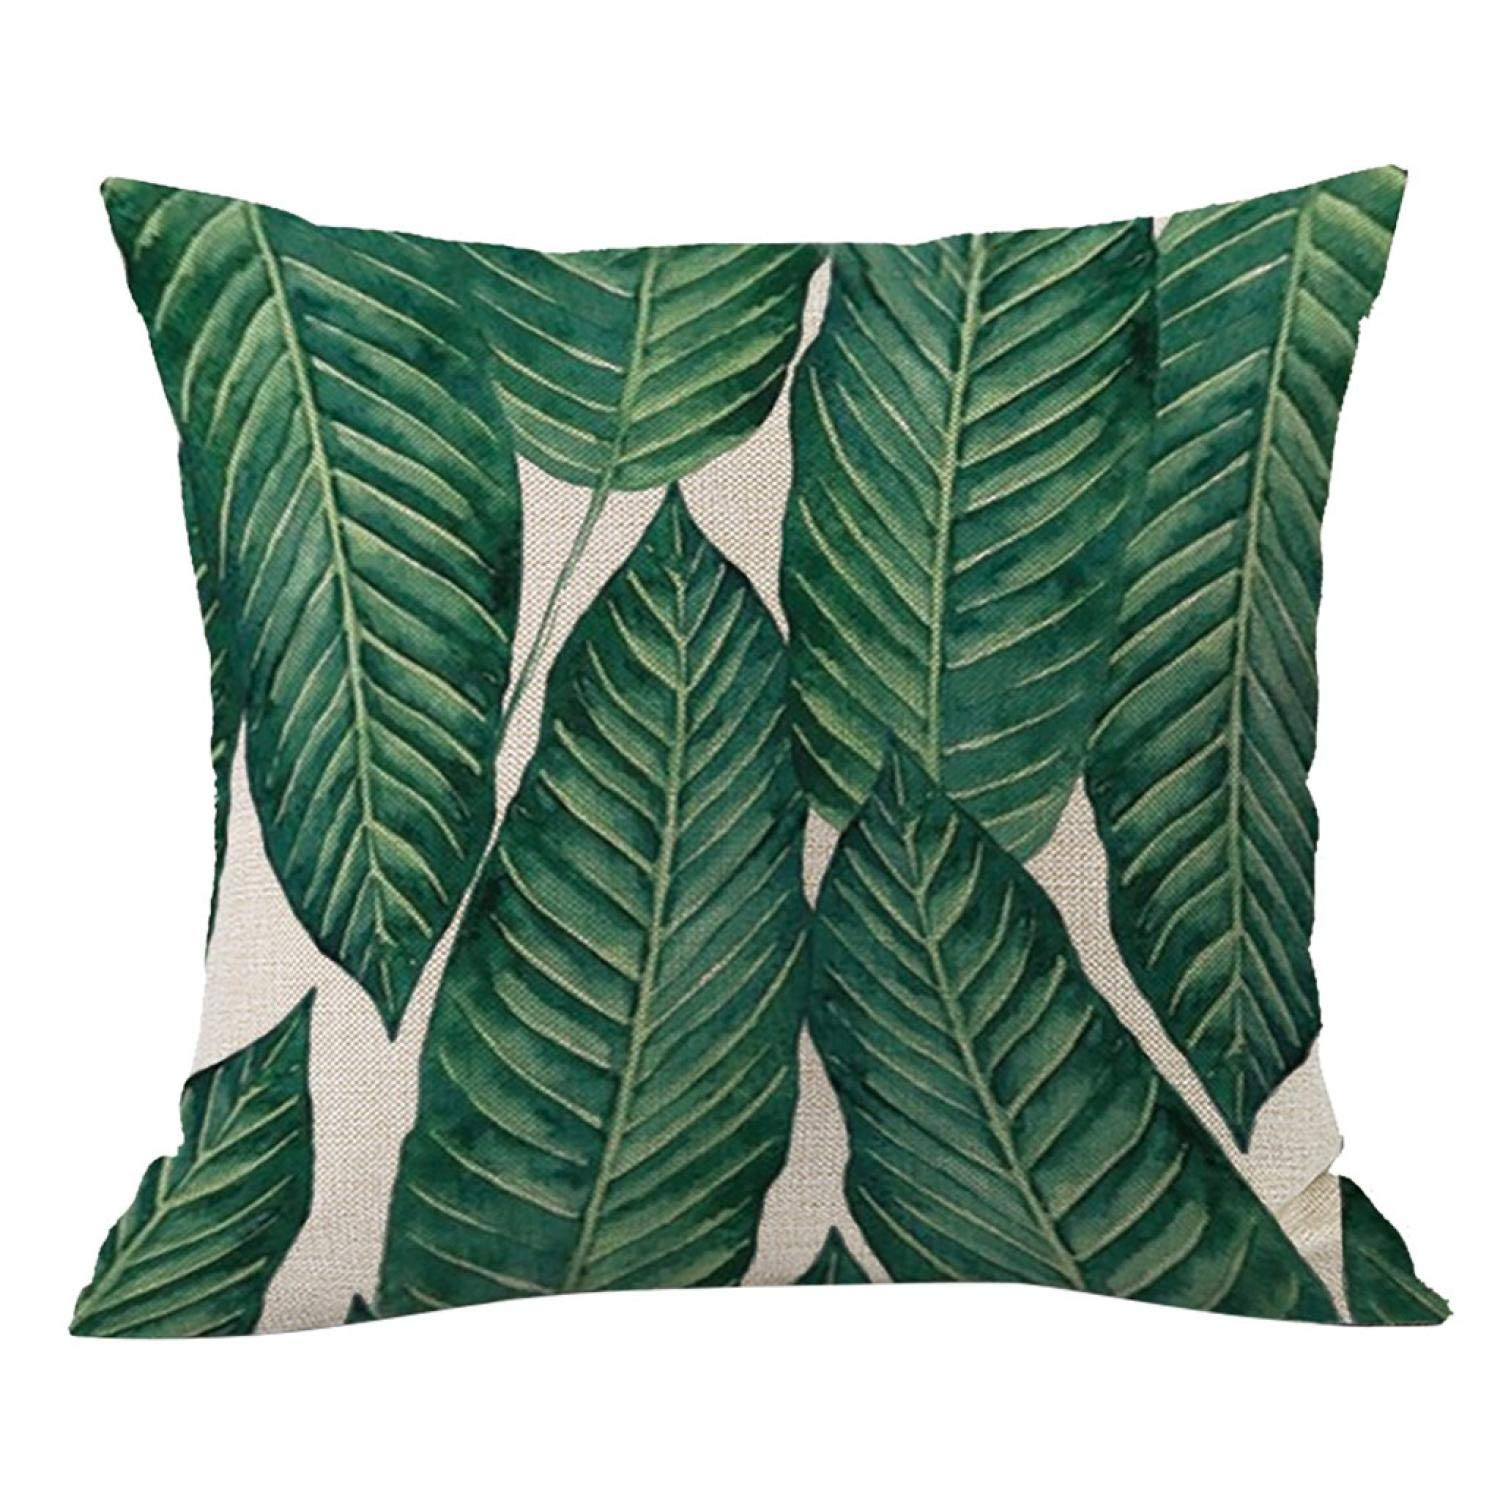 Amazon.com: Kim Pater New Pillow Case Flax Cushion Cover ...